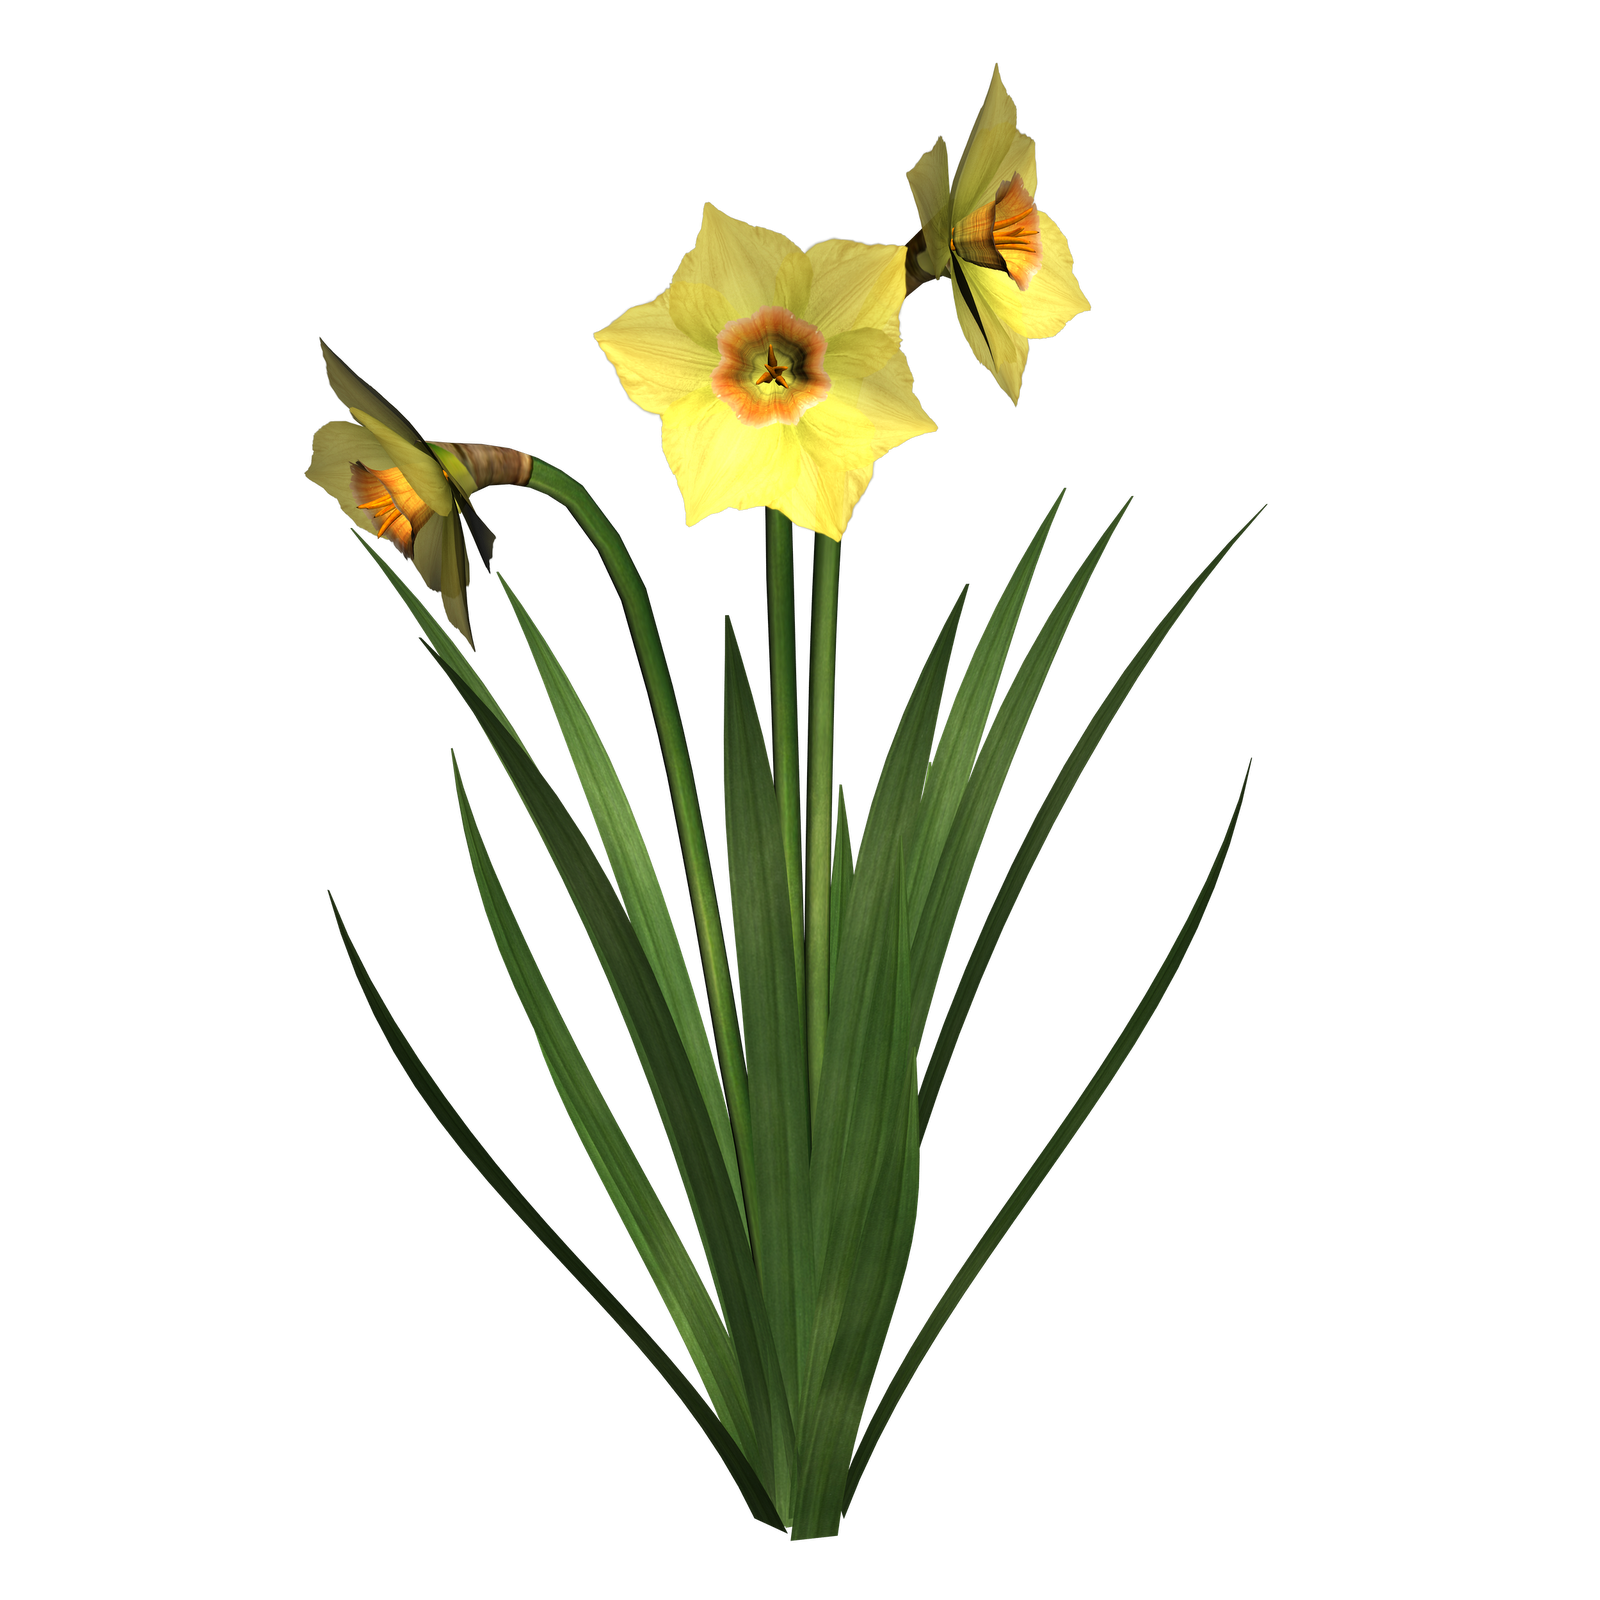 Free daffodils pictures download. Daffodil clipart flower blossom clipart black and white